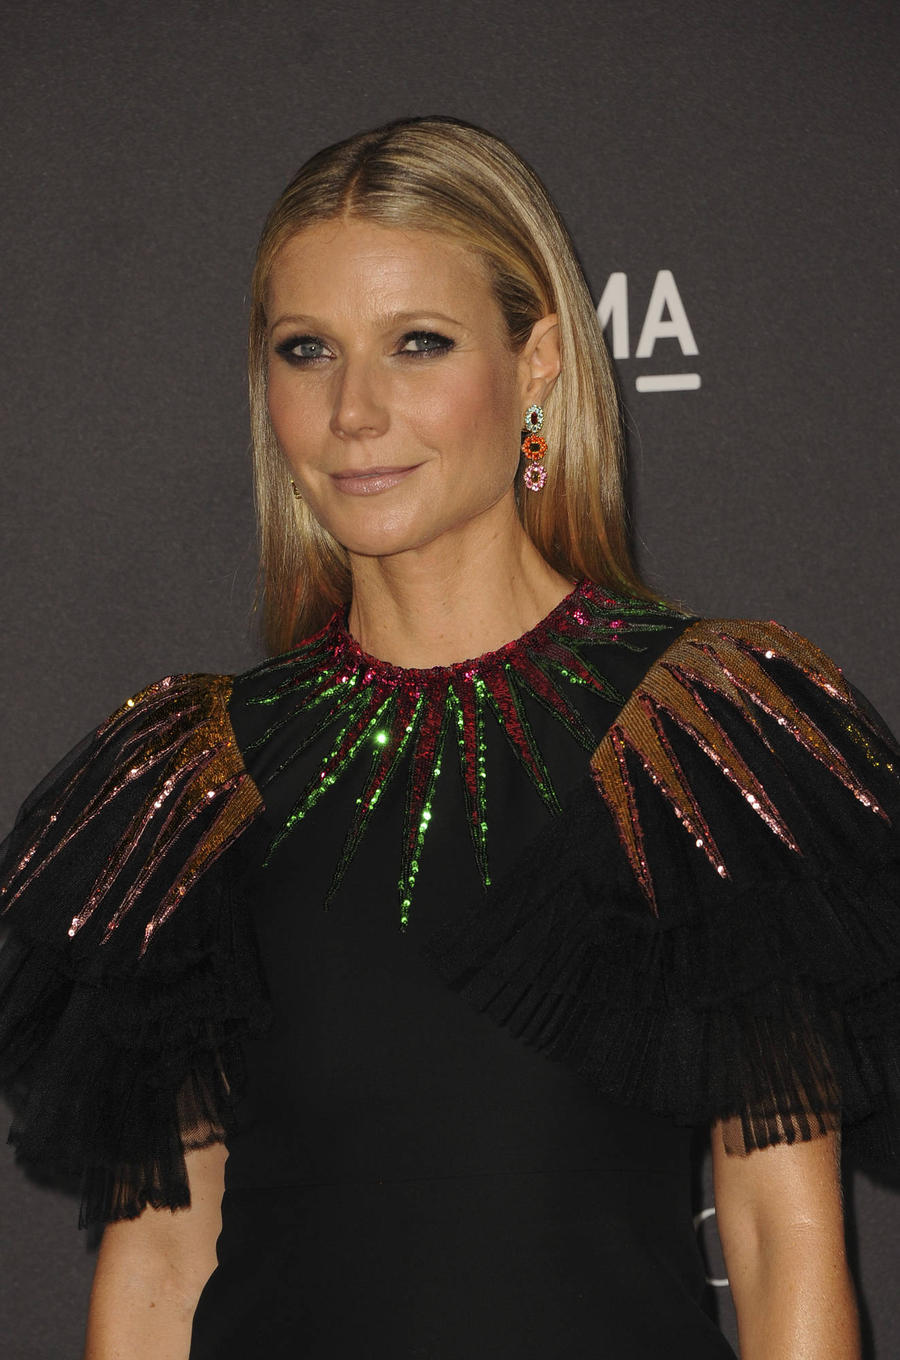 Gwyneth Paltrow Tackles Taboo Sex Act In Controversial New Goop Website Study